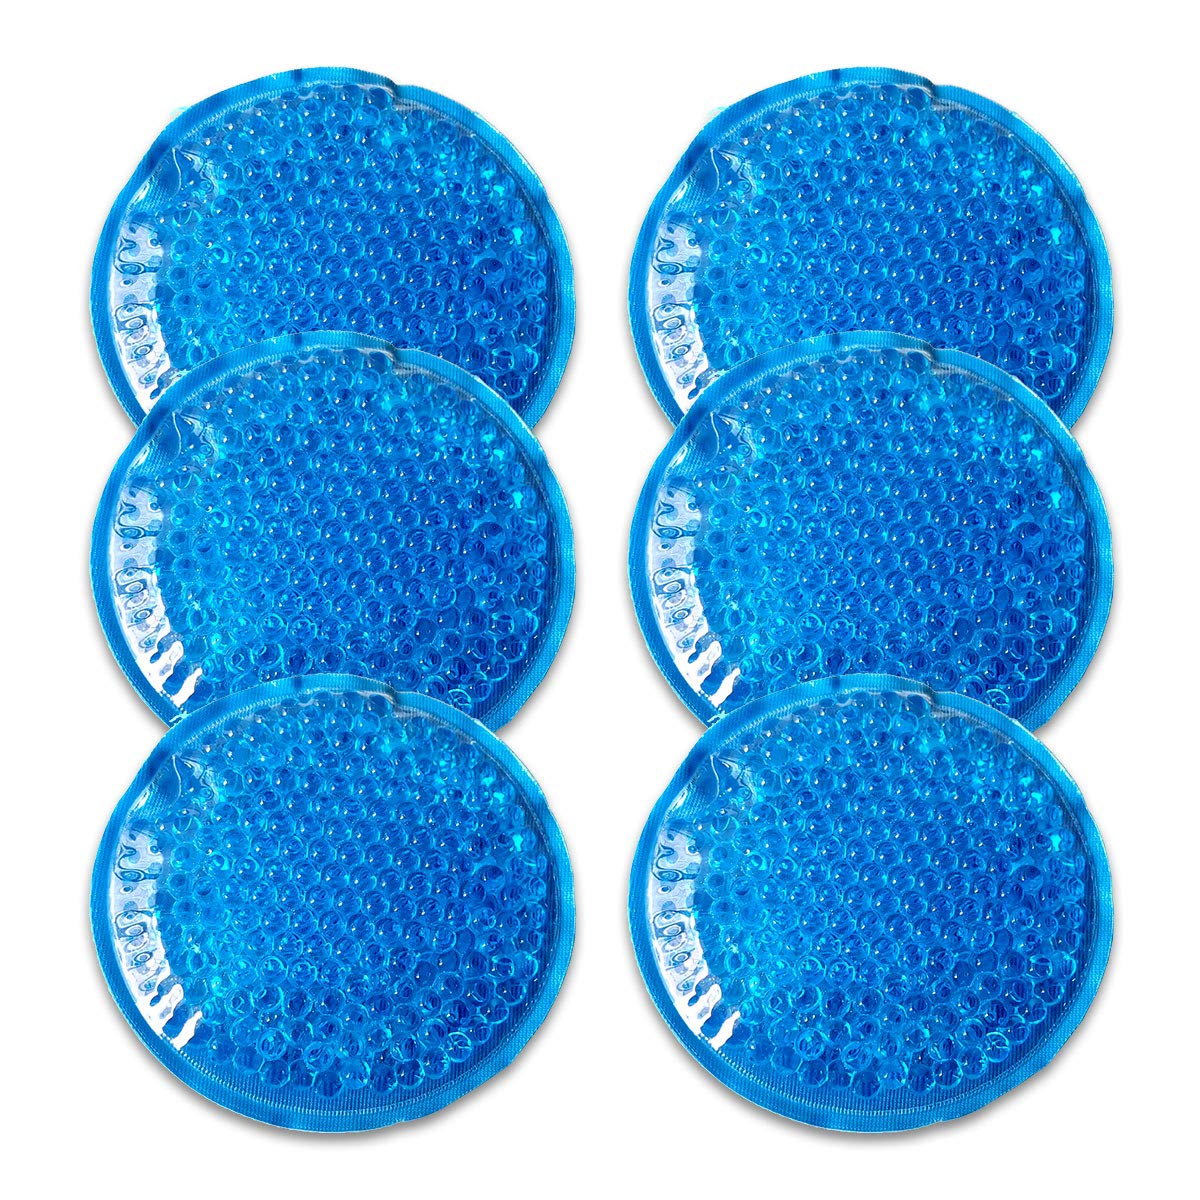 Reusable Gel Beads Ice Pack(6packs)-Small ice packs Hot & Cold Compress,Cold Pack formuscle pain relief,knee pain,headache, Caries Pain,etc.Use Microwave Hotor Freezer Cold.